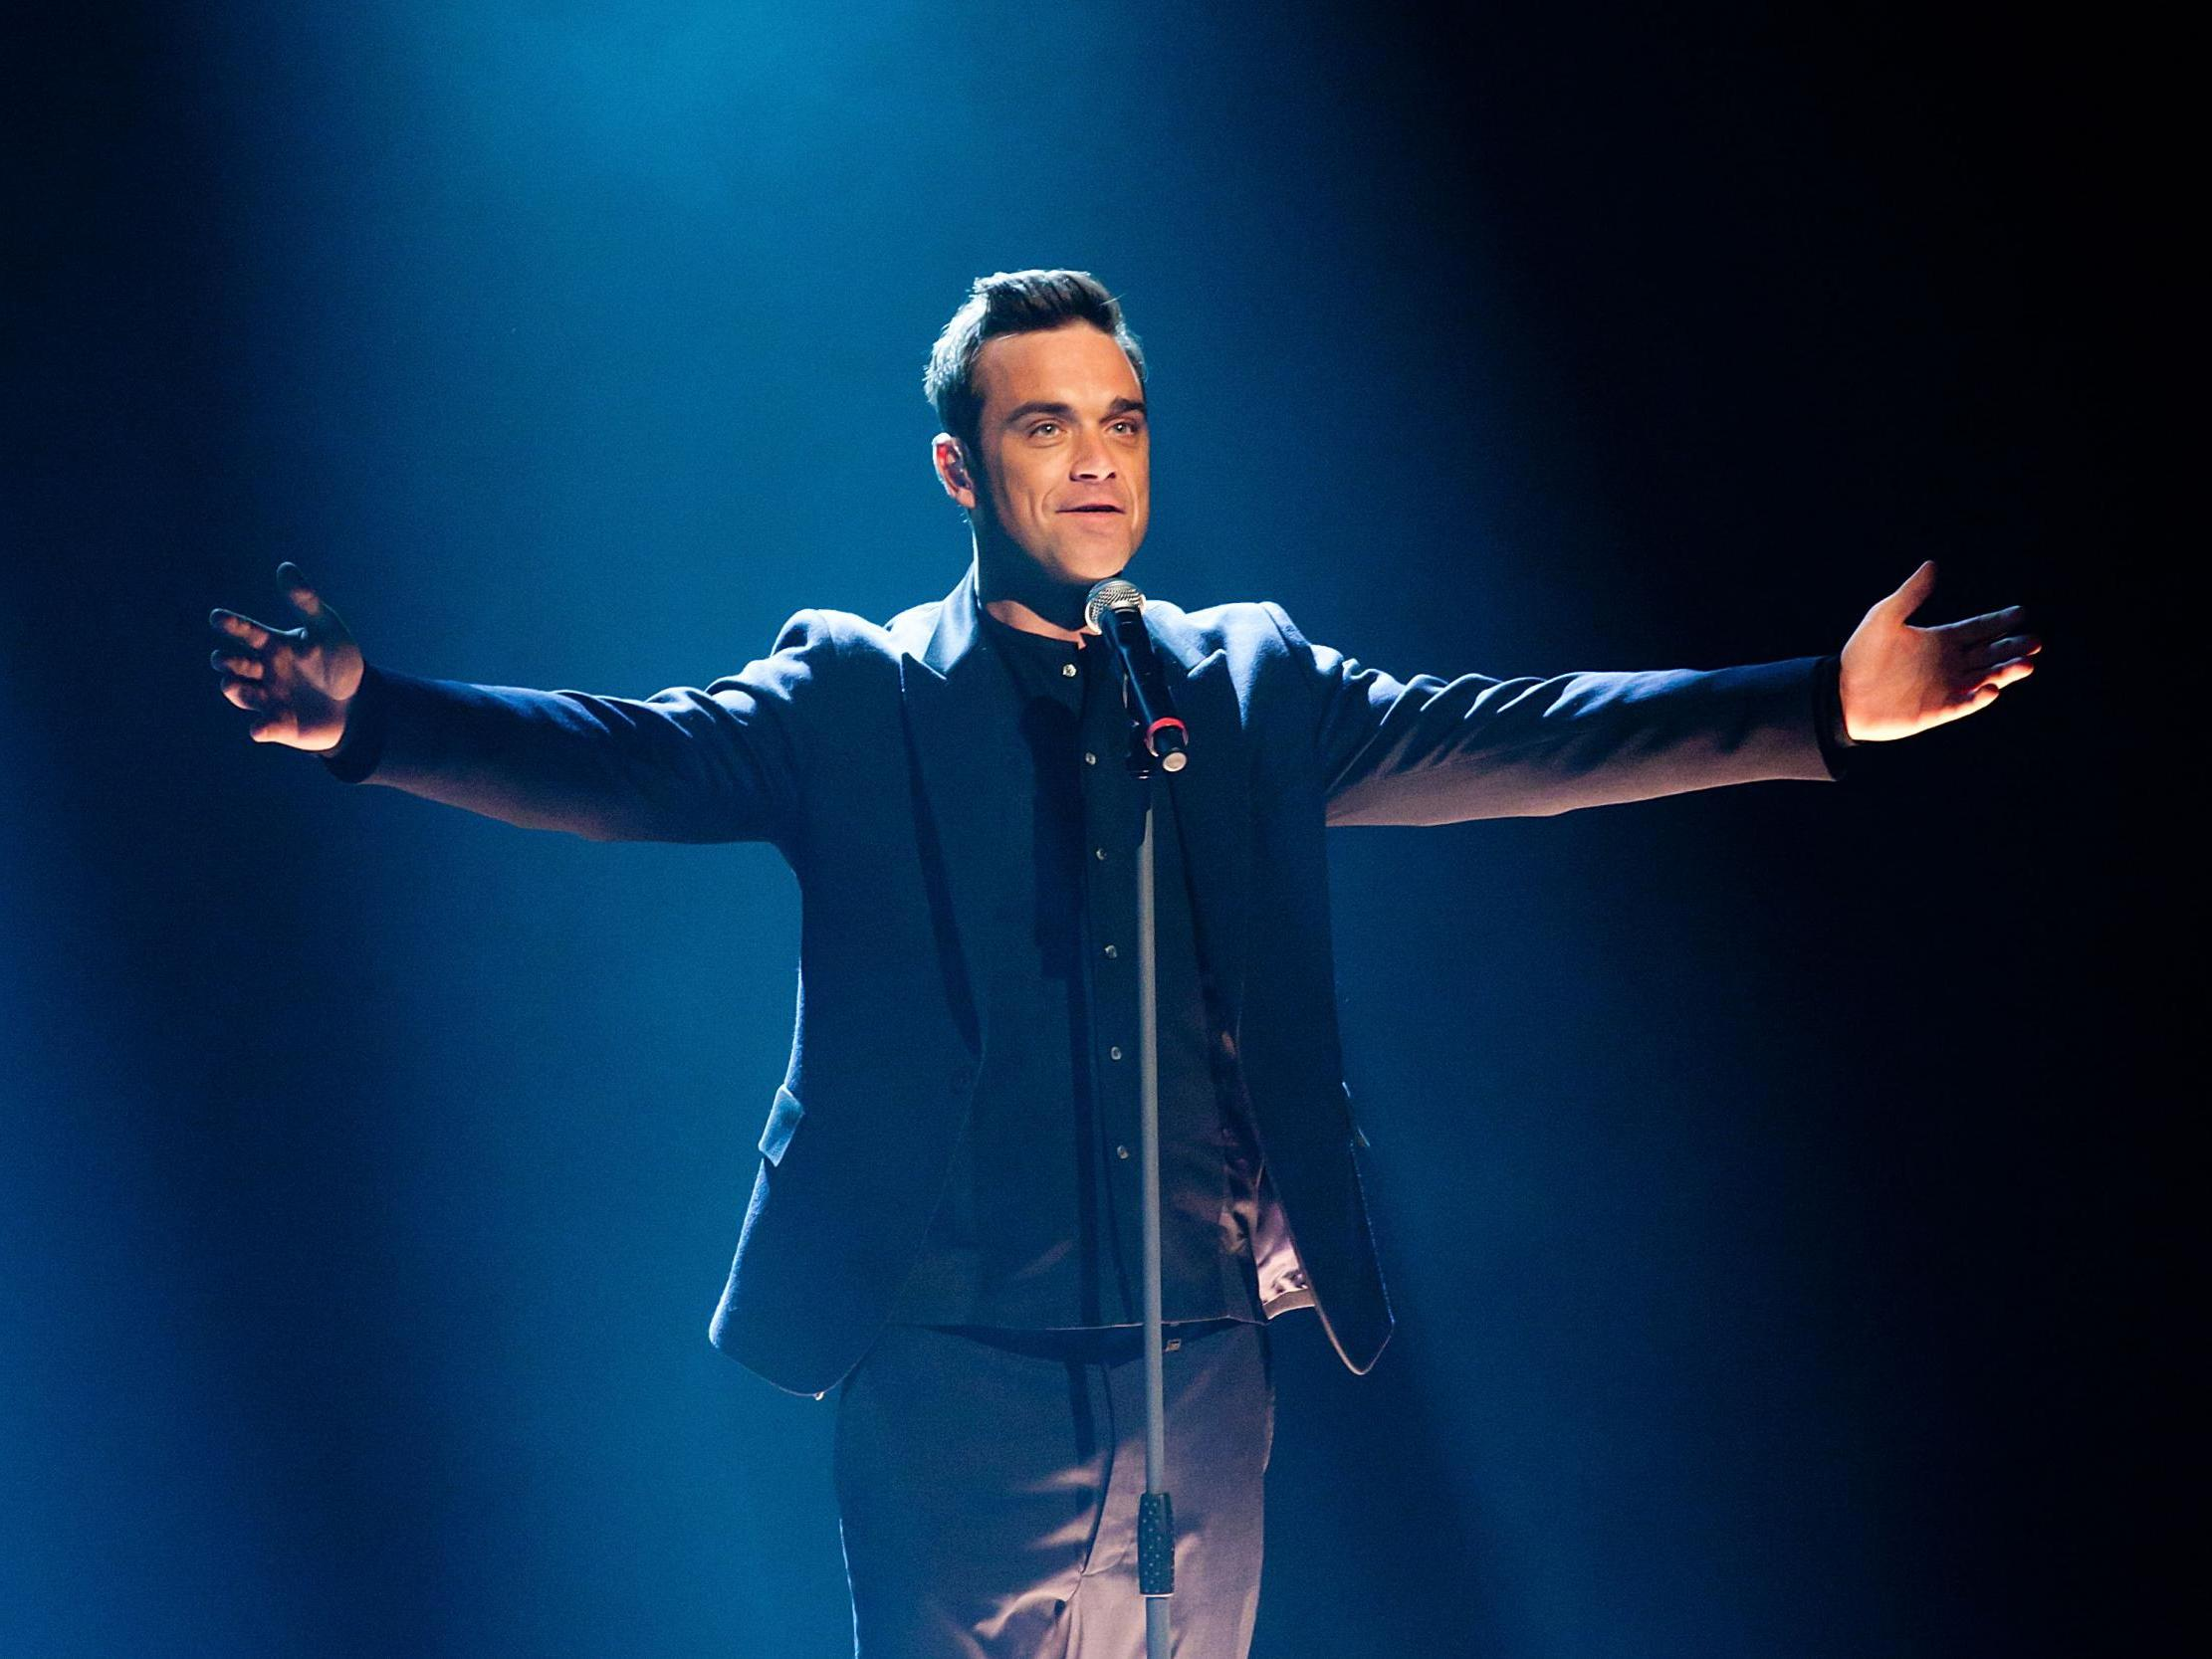 Robbie Williams announces Christmas album featuring Tyson Fury duet